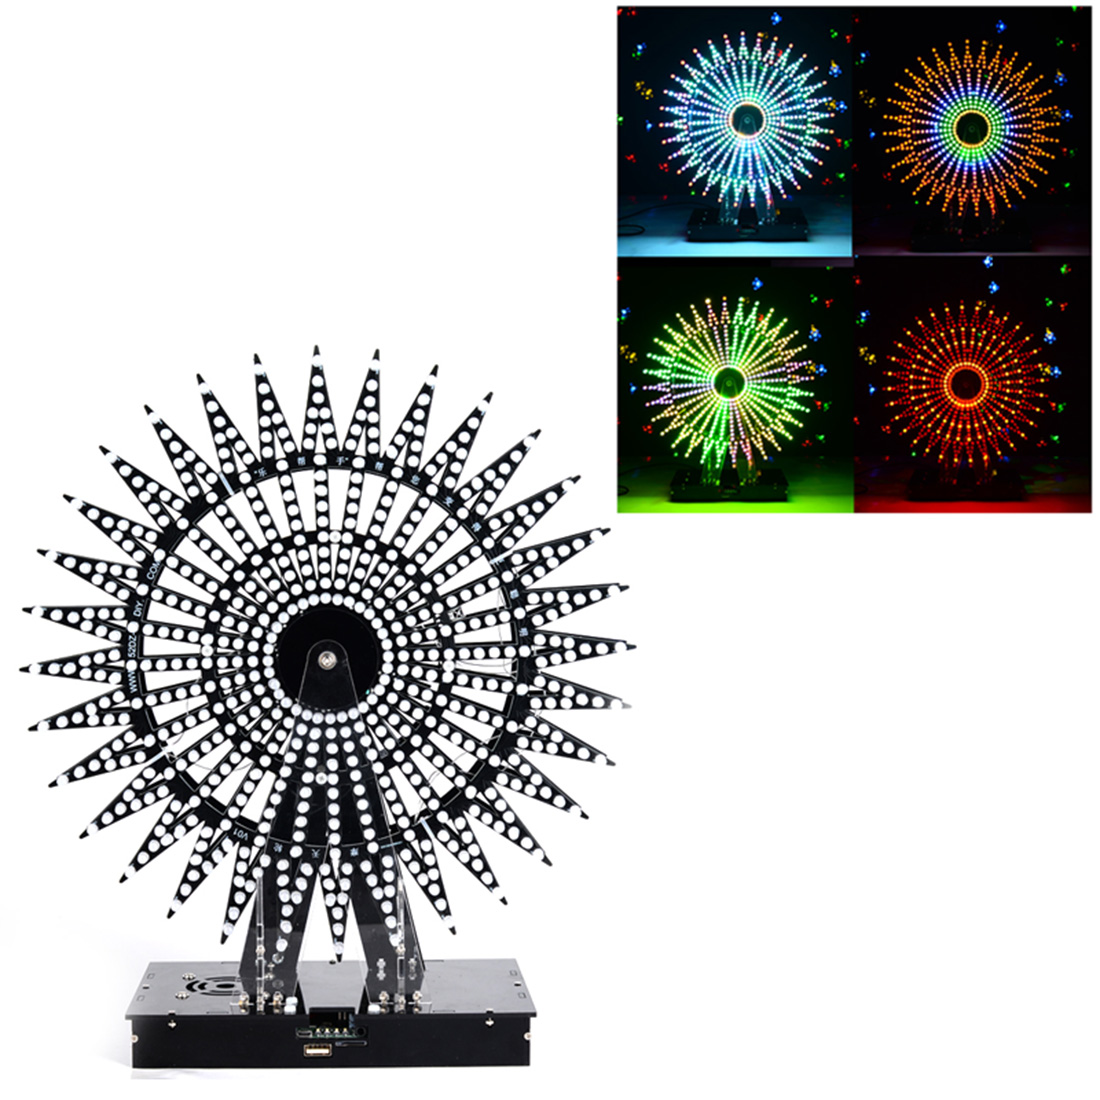 DIY Ferris Wheel Model LED Light Kit Remote Control Music Spectrum Electronic Kit 51 Single-chip LED Kit With Bluetooth Speaker